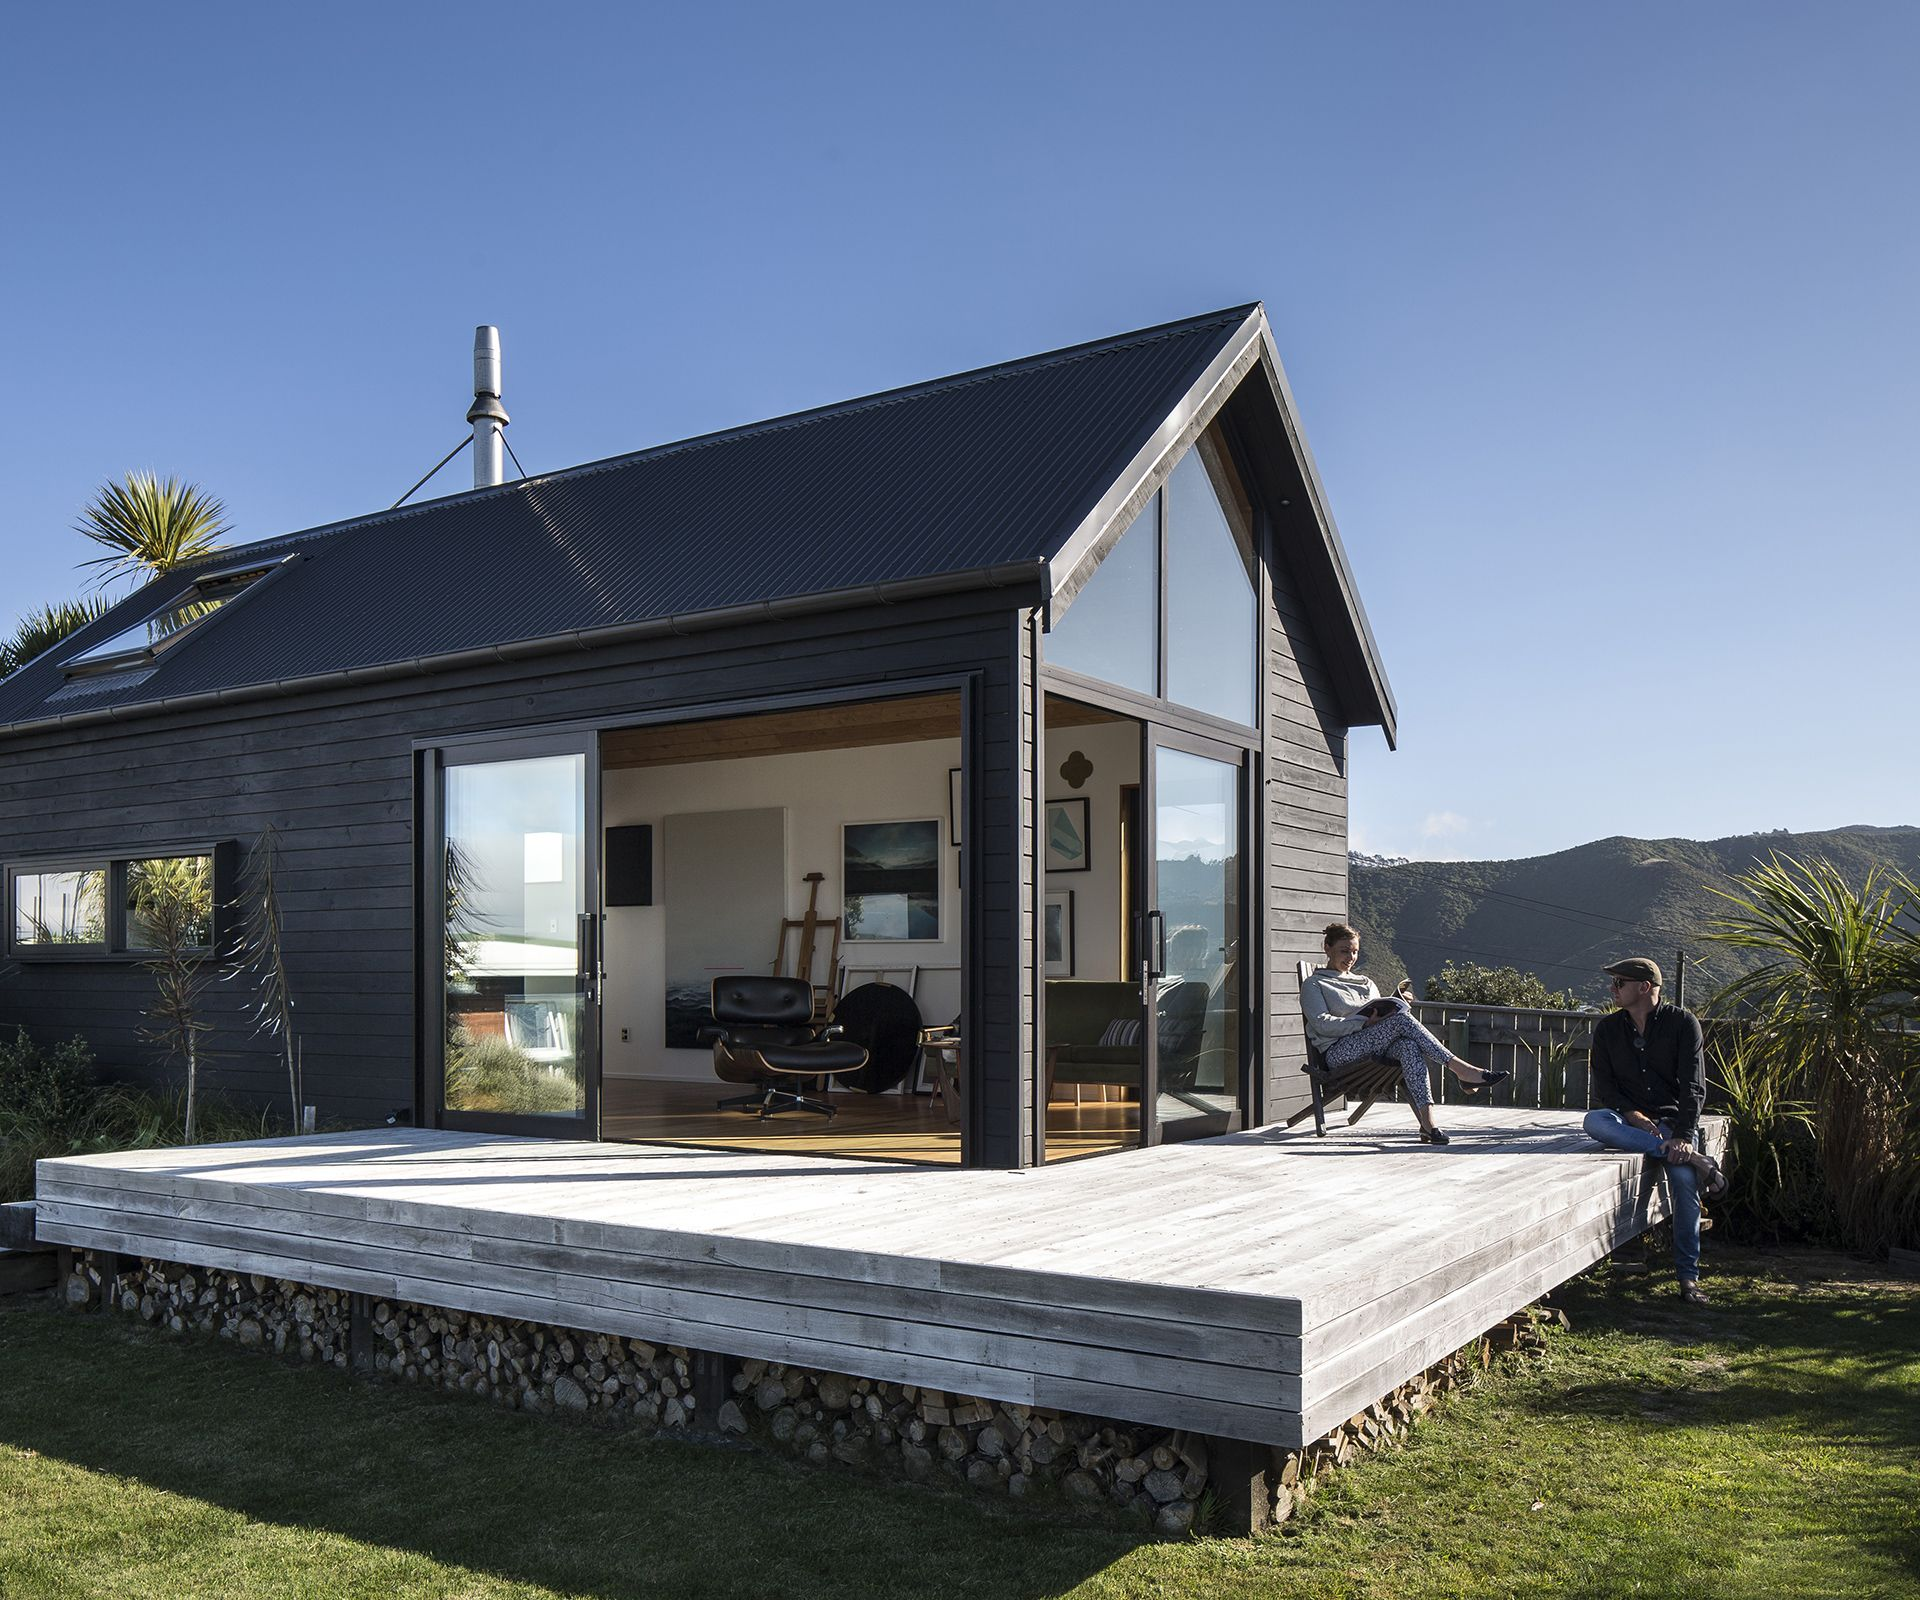 Studio House For Rent: A 45-square-metre Studio Designed For An Exposed